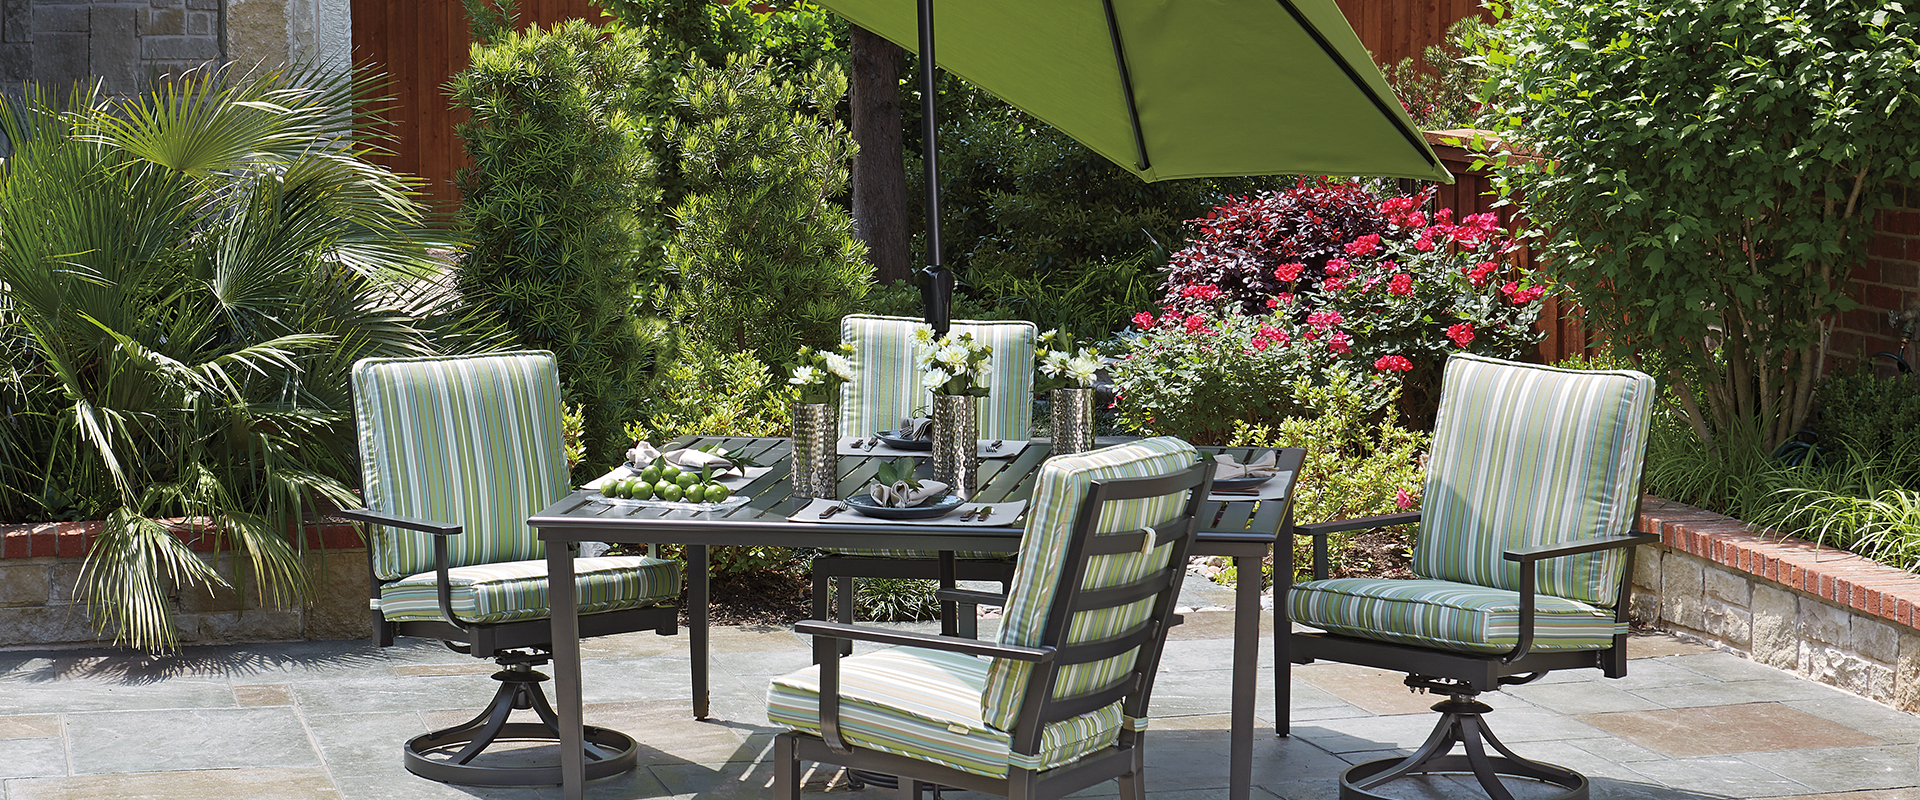 Patio Furniture Collection View Pioneer Family Pools